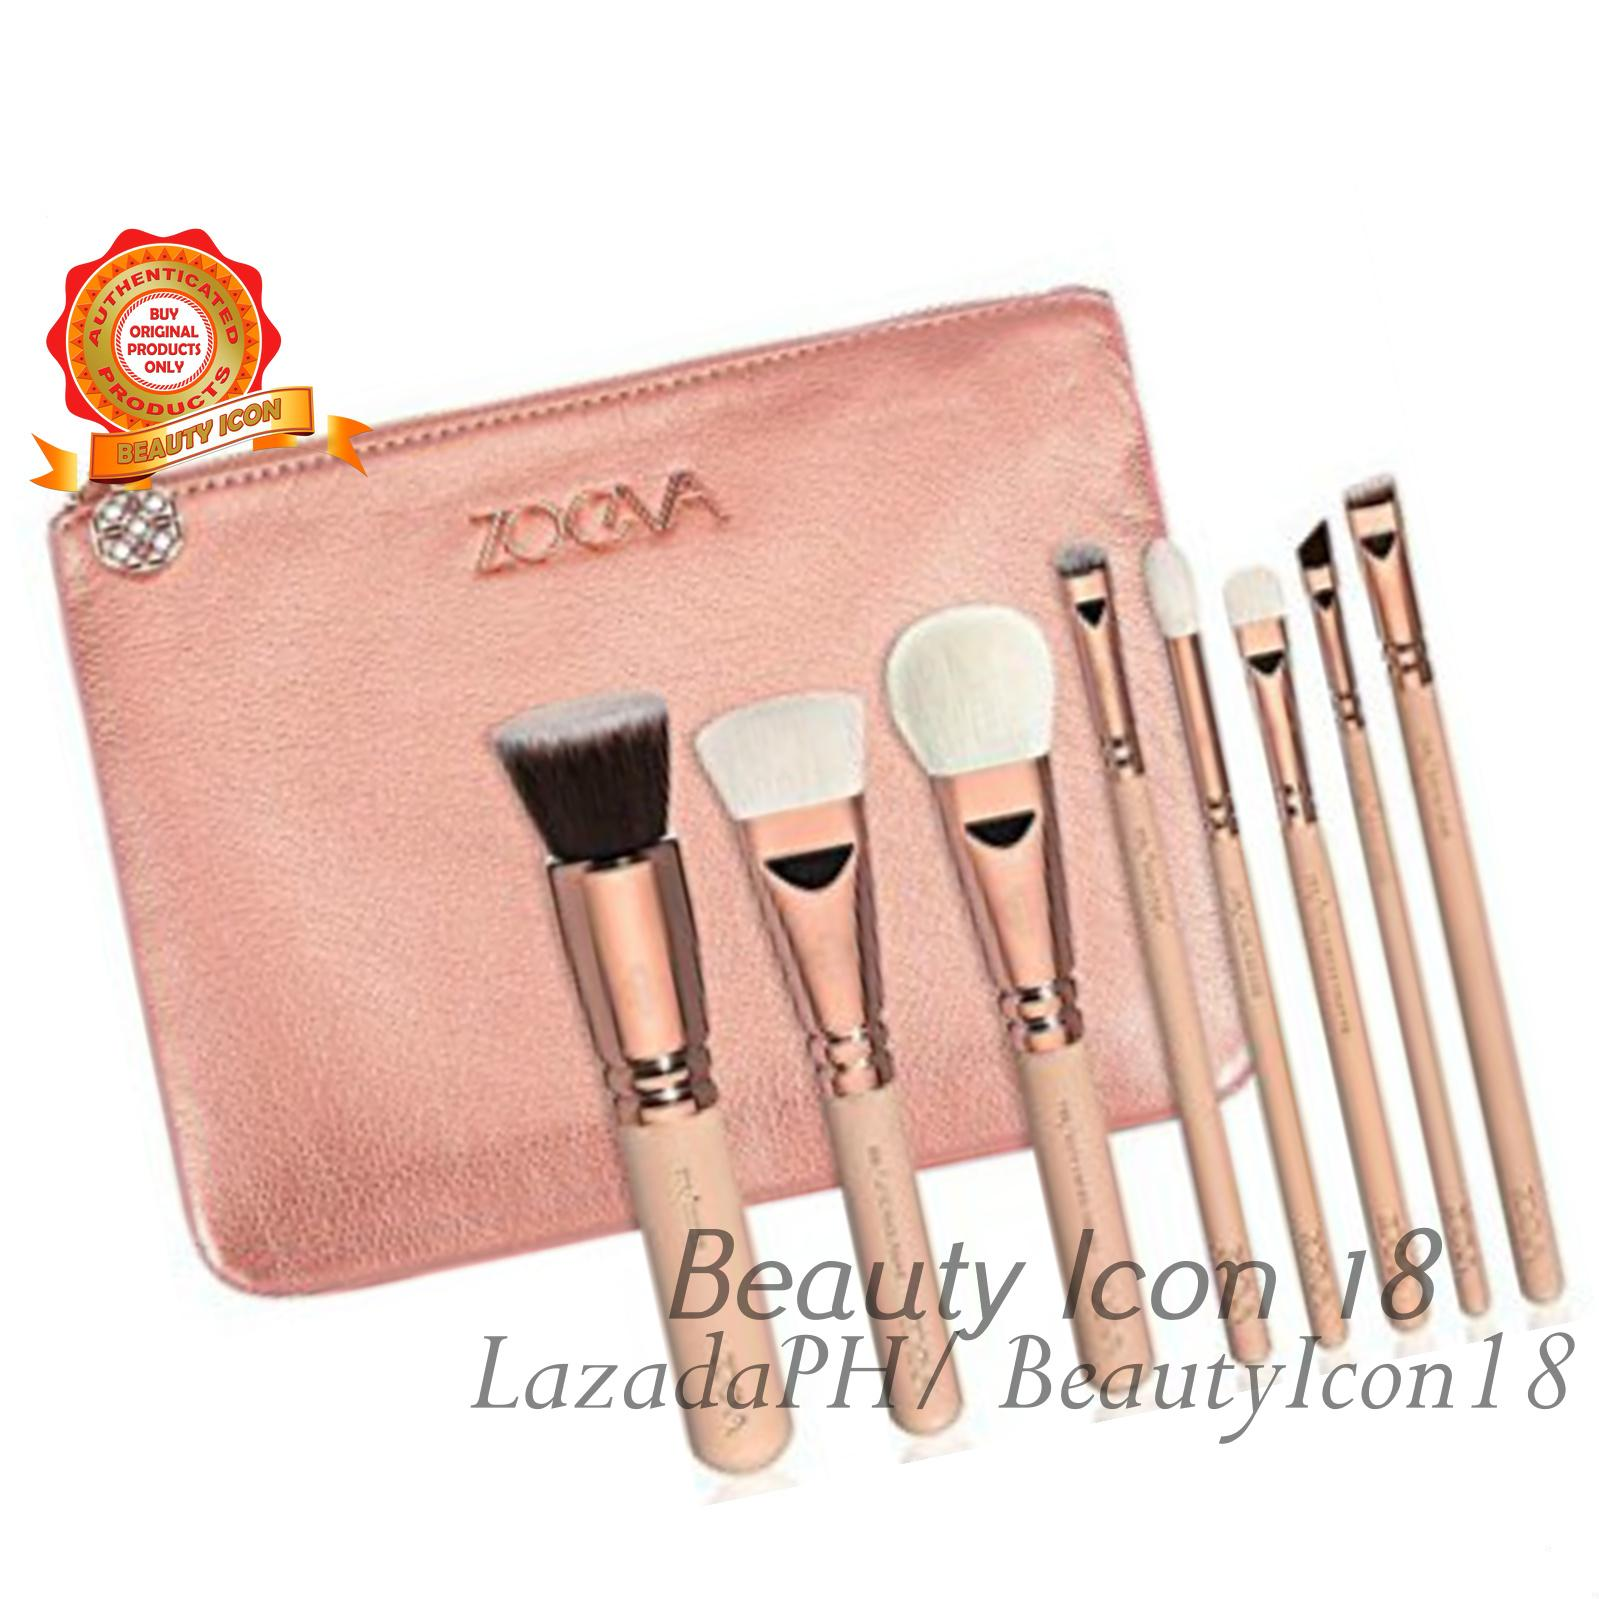 Zoeva Philippines Price List Makeup Brush Set Pouch For 36 Pcs Professional Cosmetic Facial Wood Make Up Brushes Tools Kit With Black Leather Case 8 Cosmetics Rose Gold